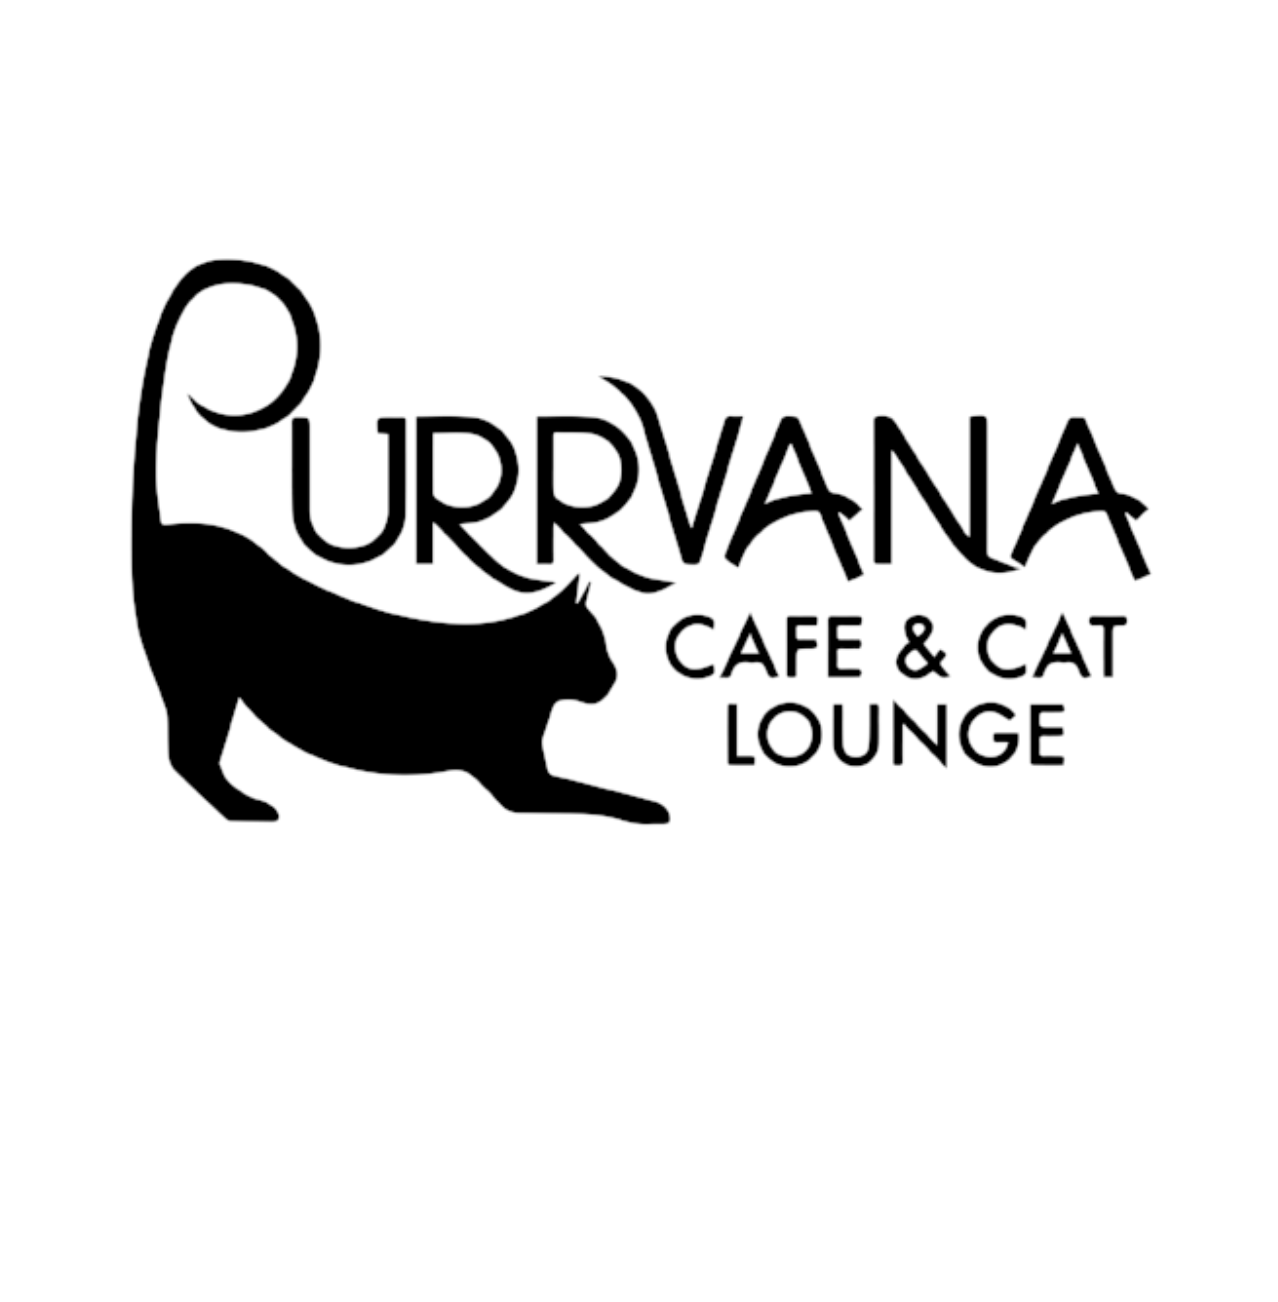 PURRVANA CAFE & CAT LOUNGE - WHO. . . . Cafe serving coffees, teas & pastries, with lounges hosting adoption-ready cats from Palmetto Animal LeagueWHERE . . 1402 Barnard St., Savannah, GAWHAT . . . Serving Auspicious croissants and assorted pastries